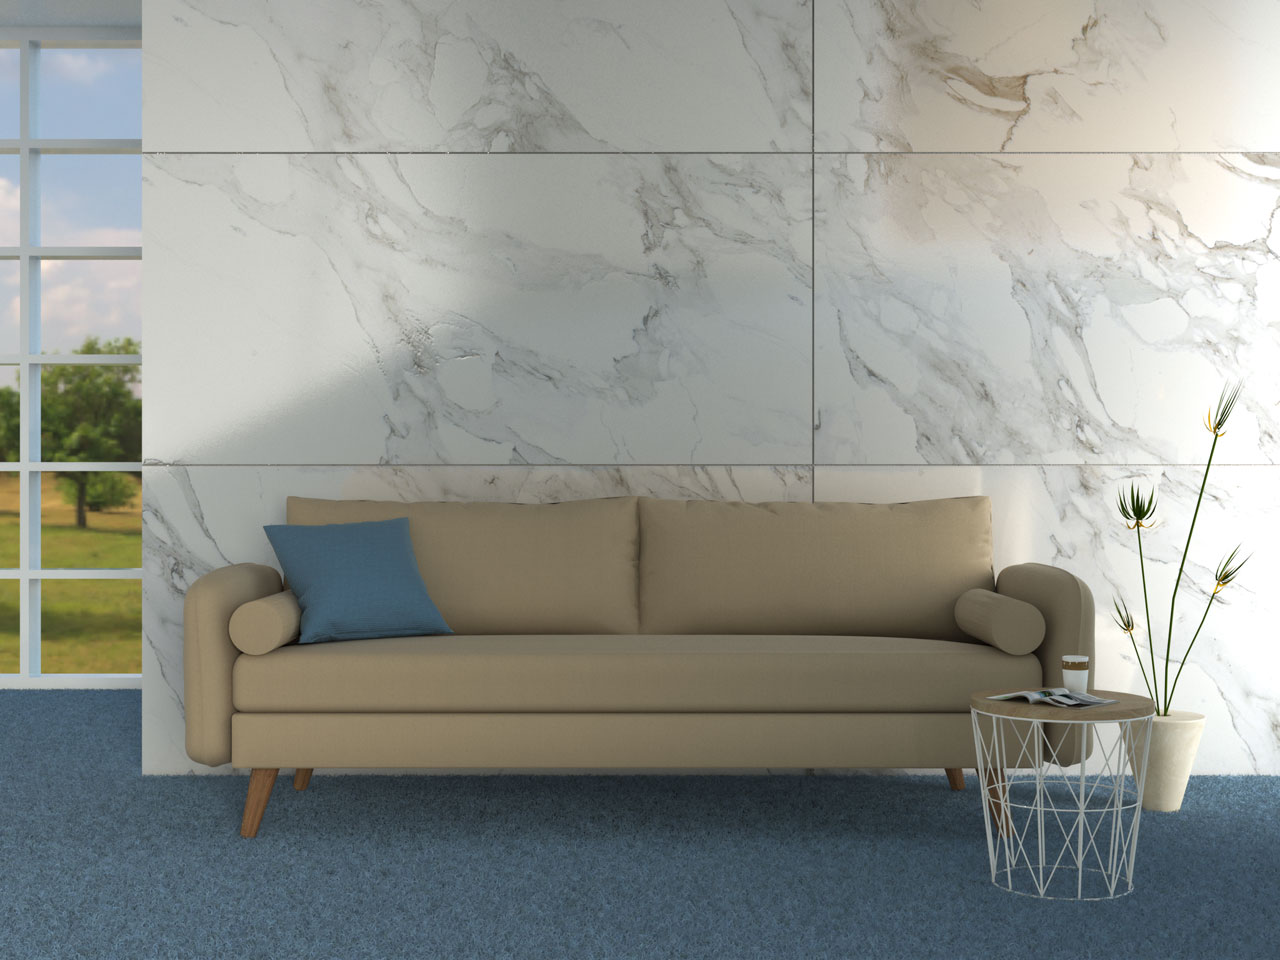 Beige couch with blue carpet